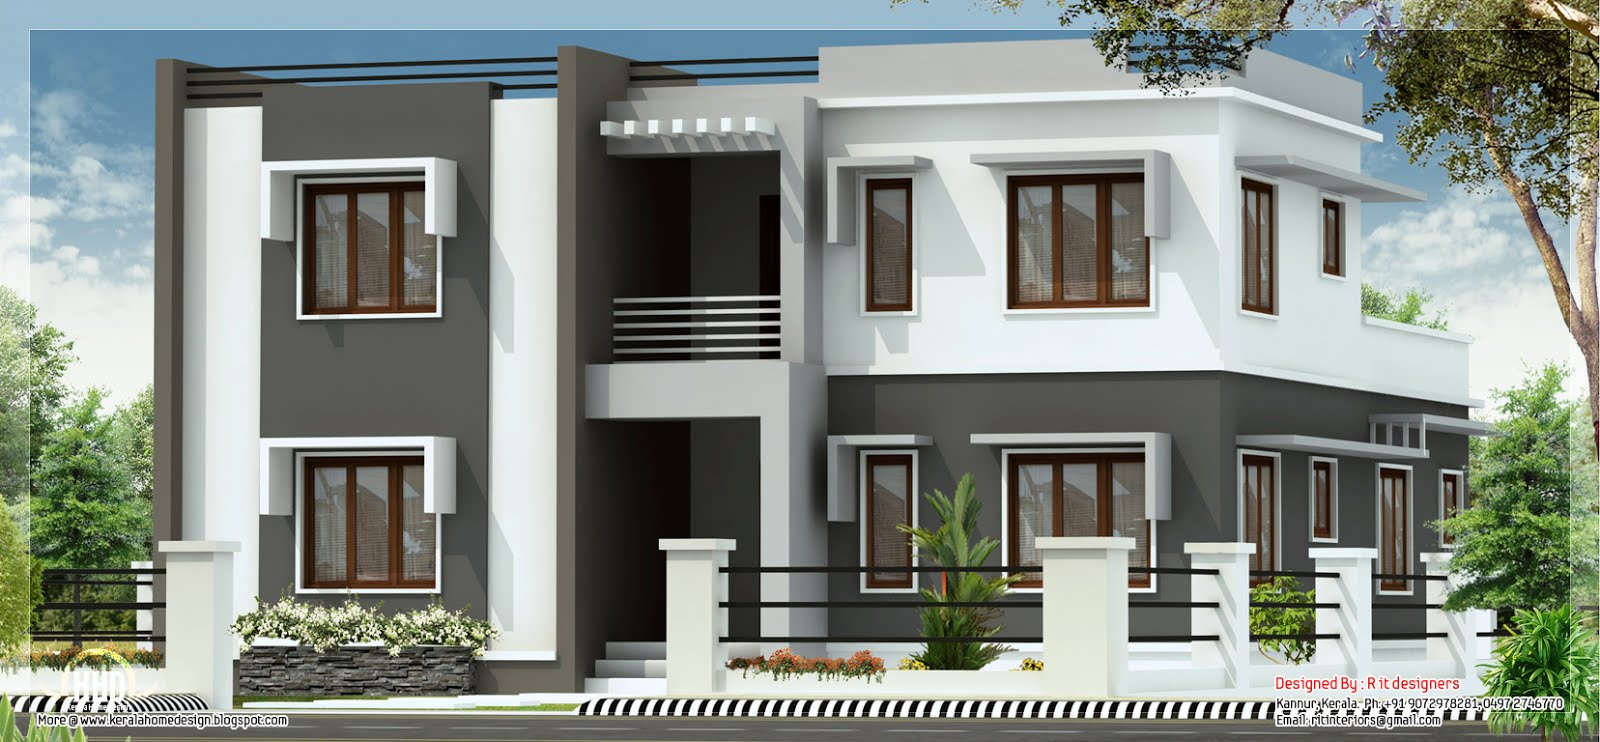 4 bedroom flat roof house plans for House plans for flats